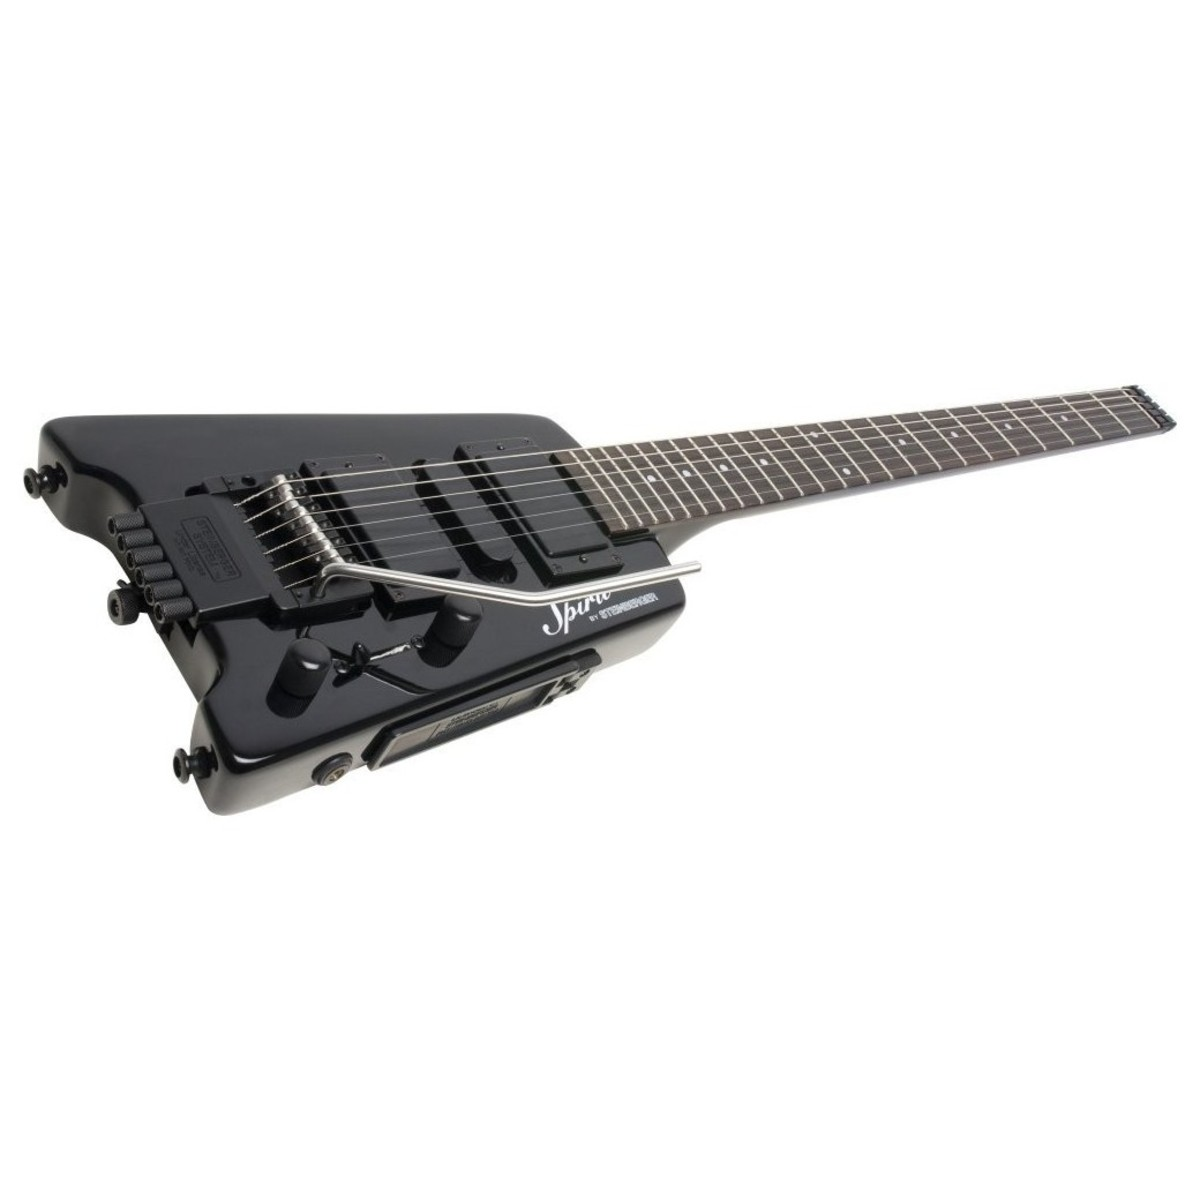 Steinberger Spirit Gt Pro Deluxe Electric Guitar Black At